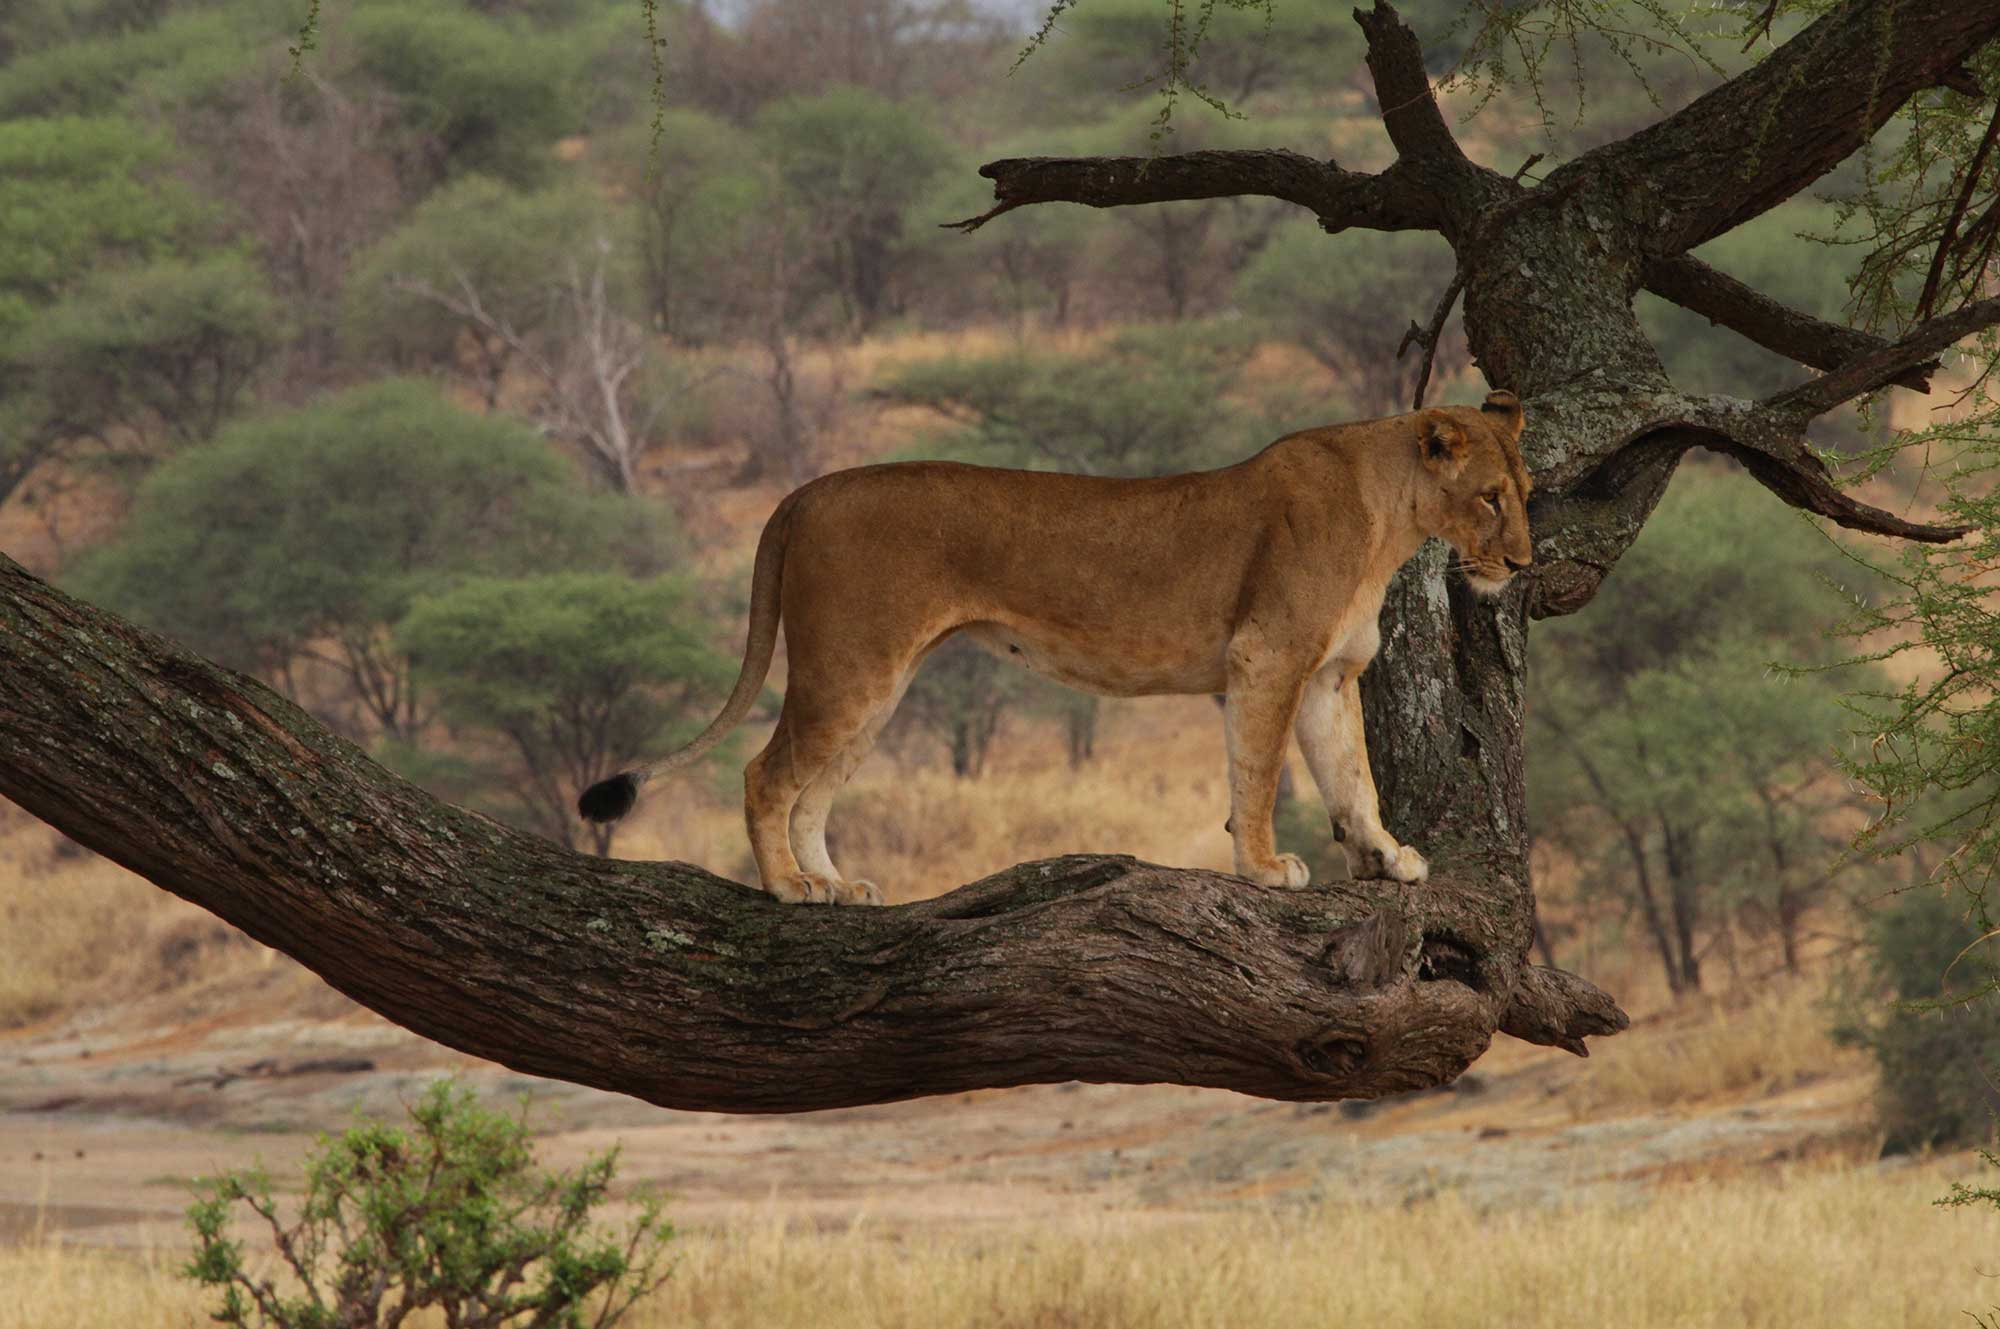 lion on a tree branch in the serengeti